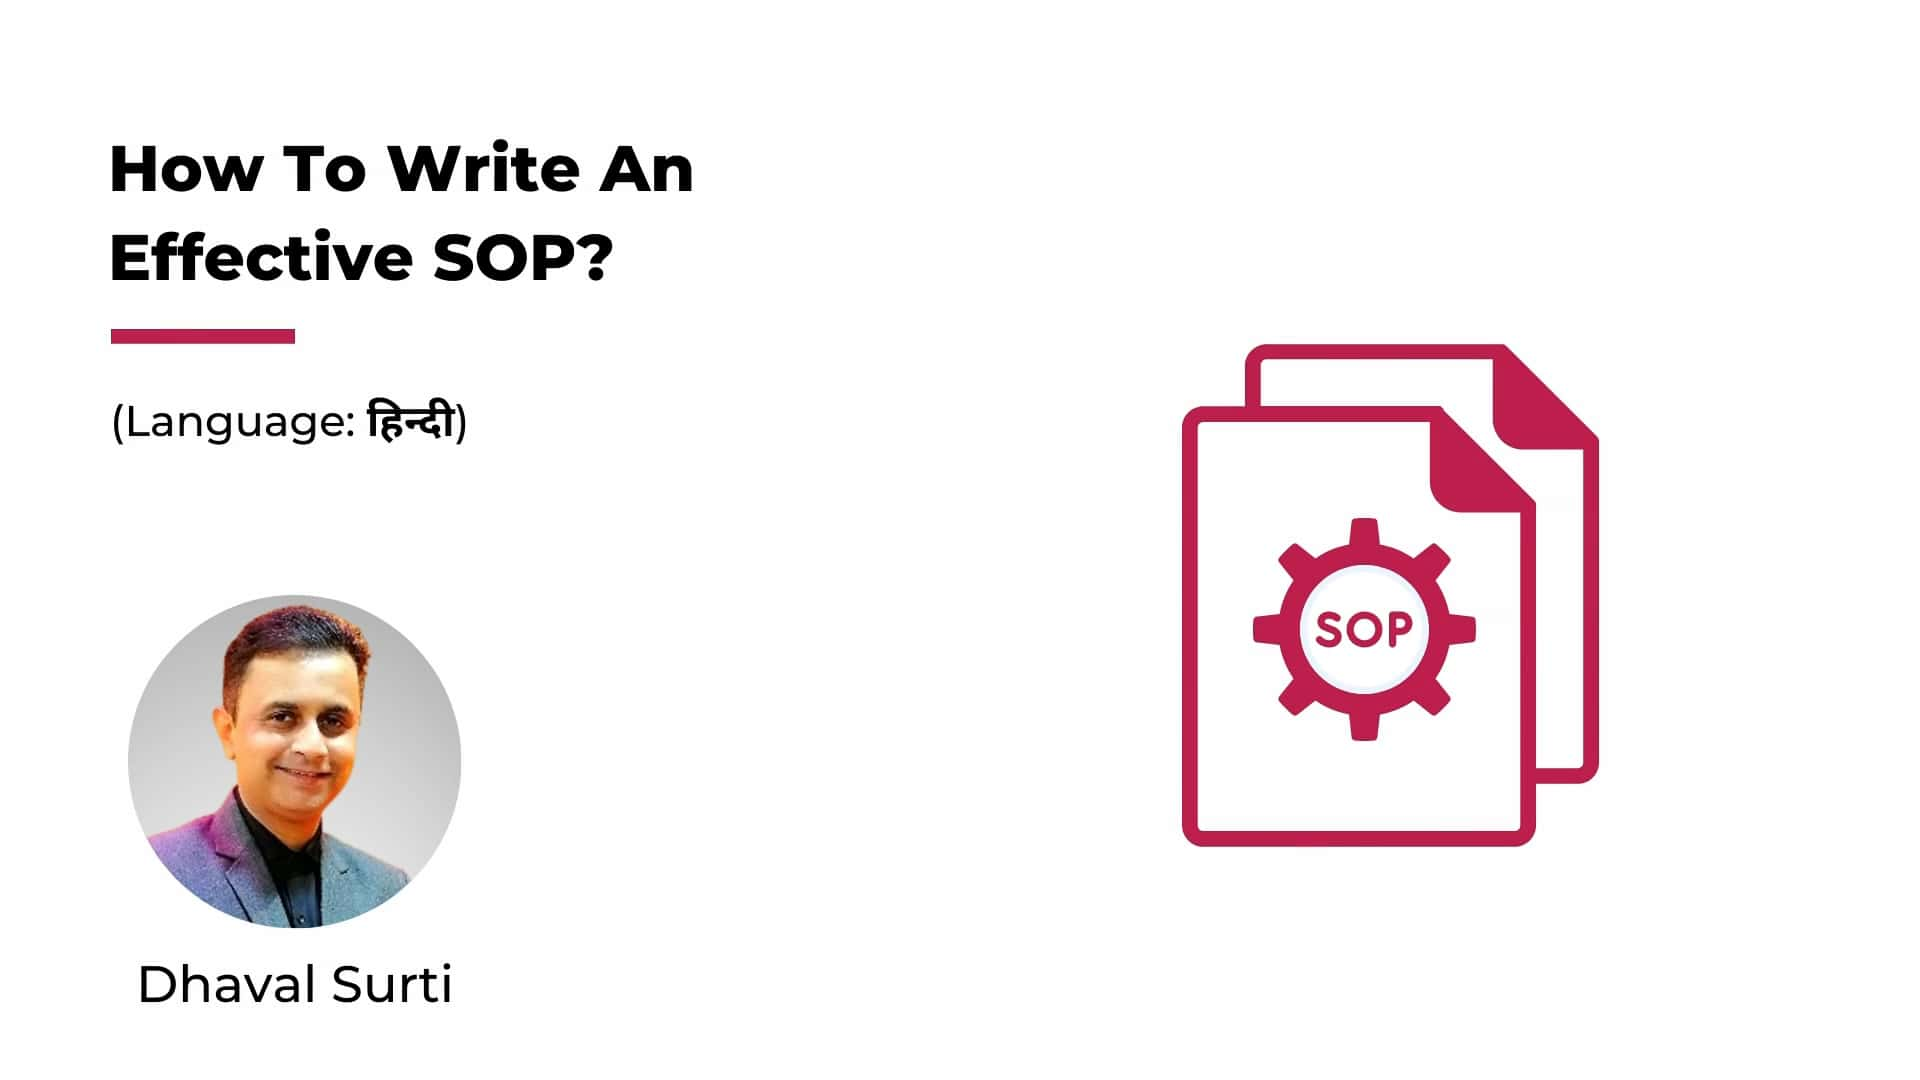 How to Write An Effective SOP